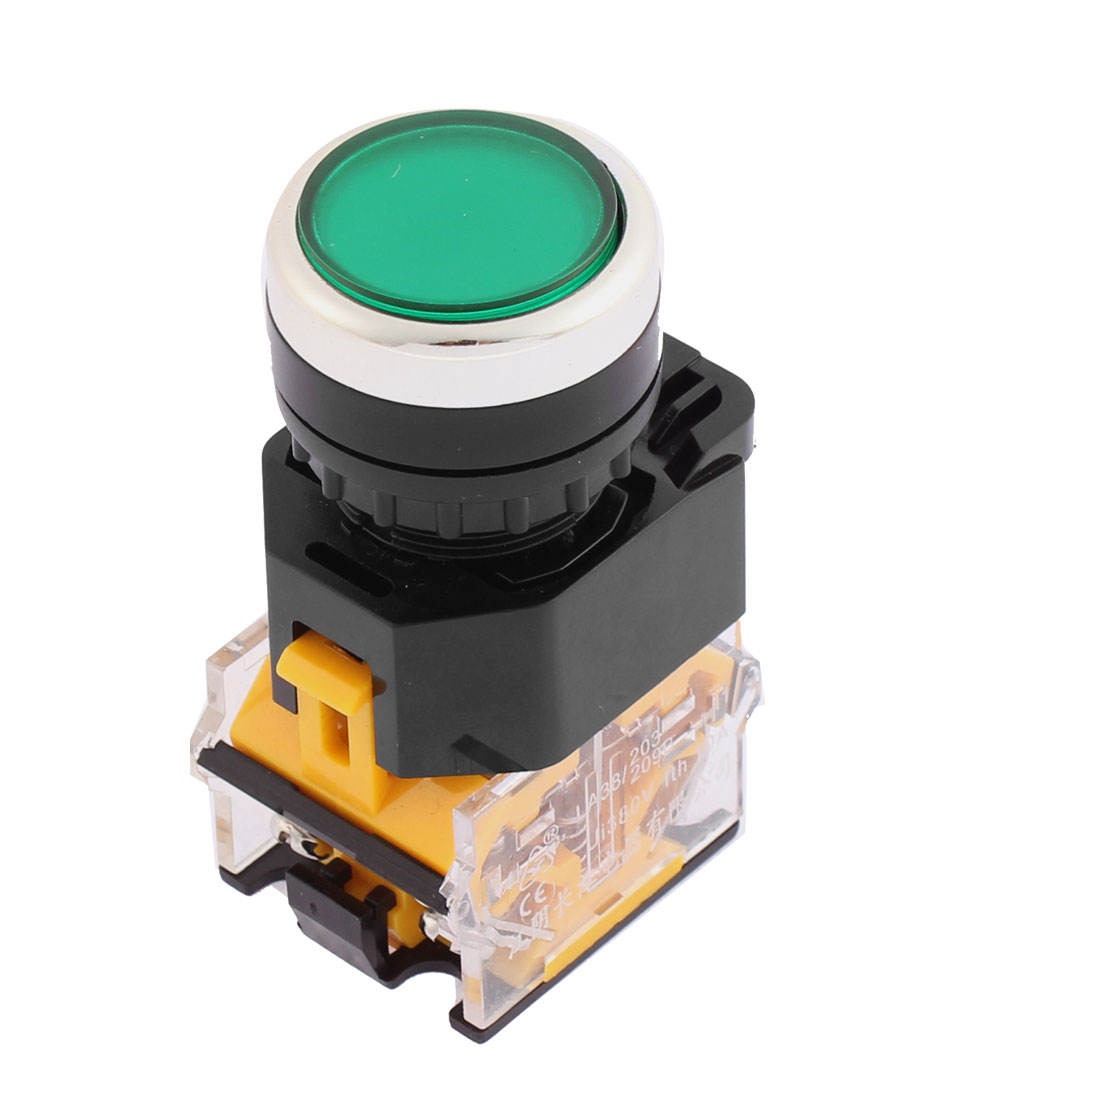 380V 10A 21mm Panel Green Button Momentary Pushbutton Switch 1NO 1NC DPST